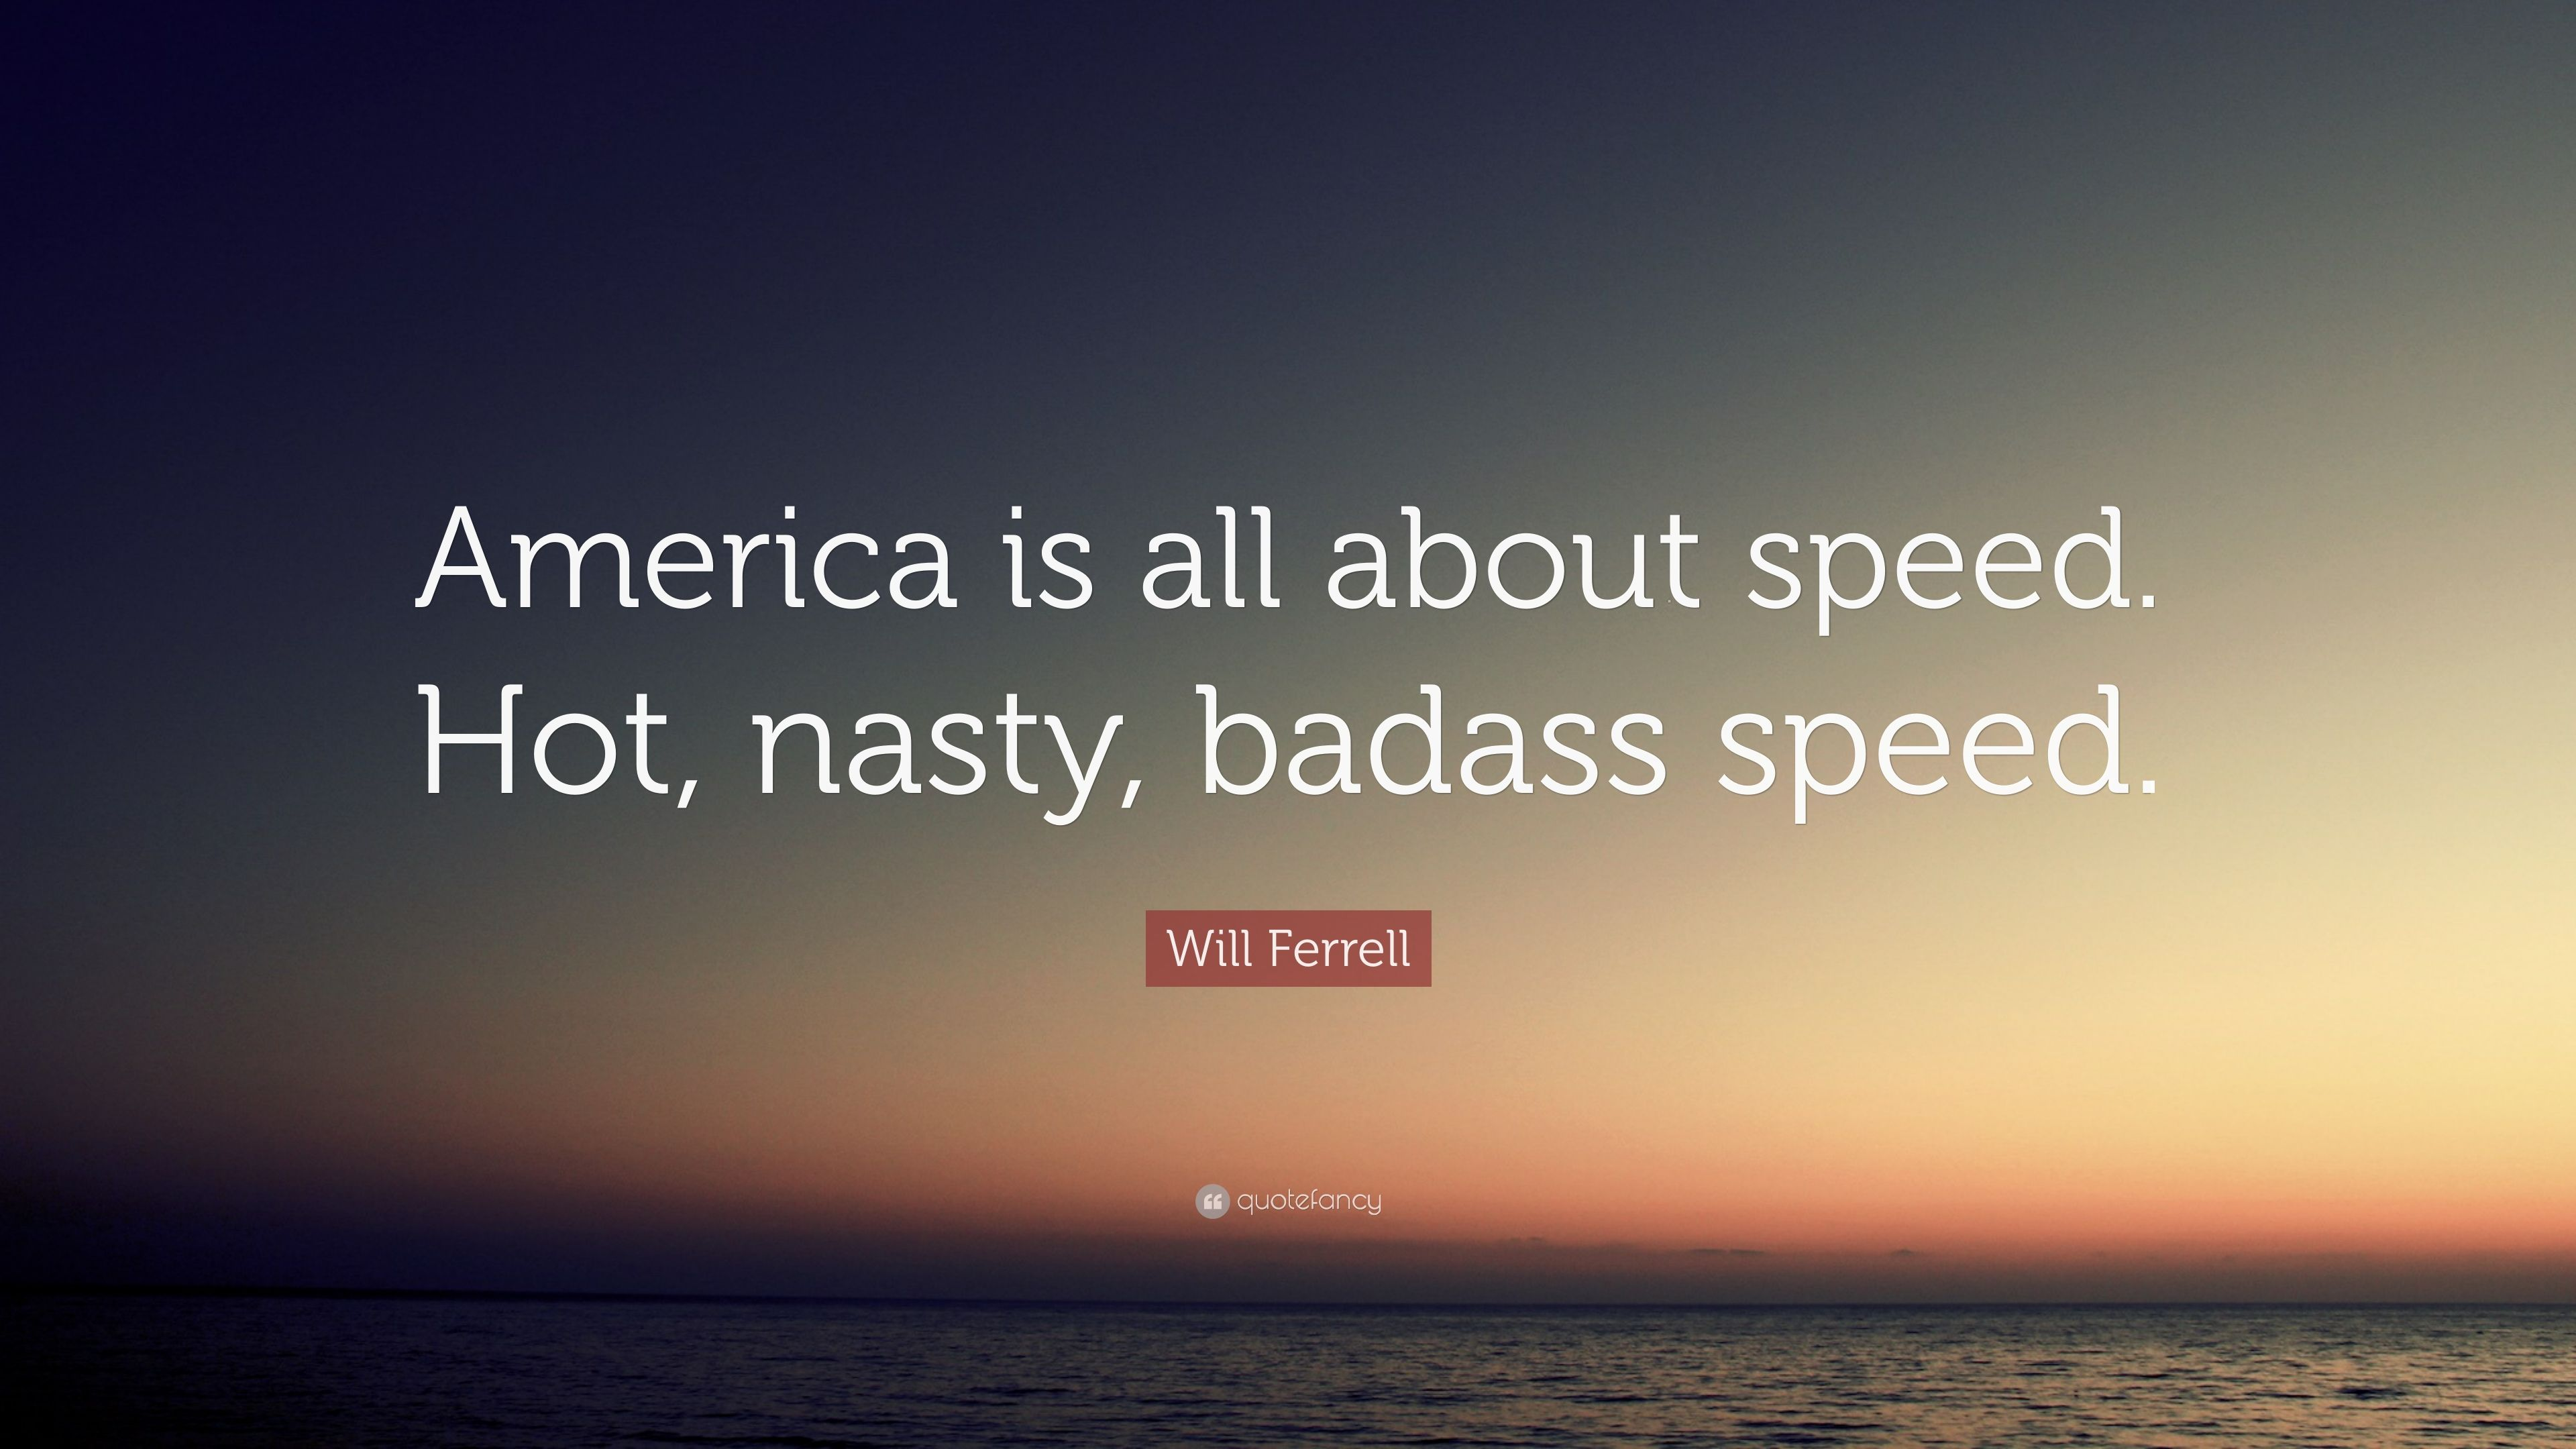 America is all about speed hot nasty badass speed